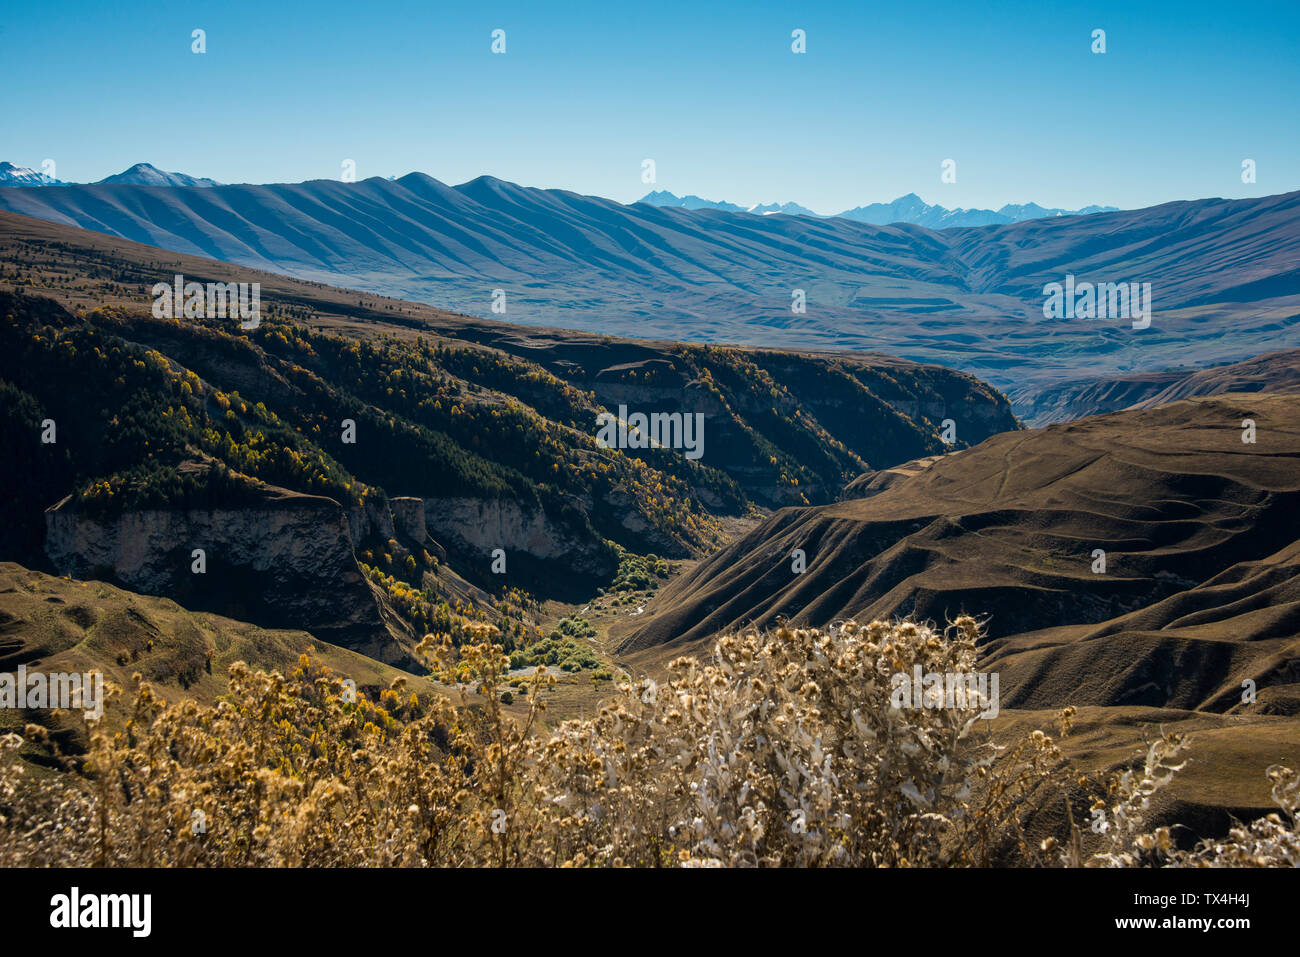 Russia, Caucasus, Chechnya, Overlook over the Chechen mountains - Stock Image